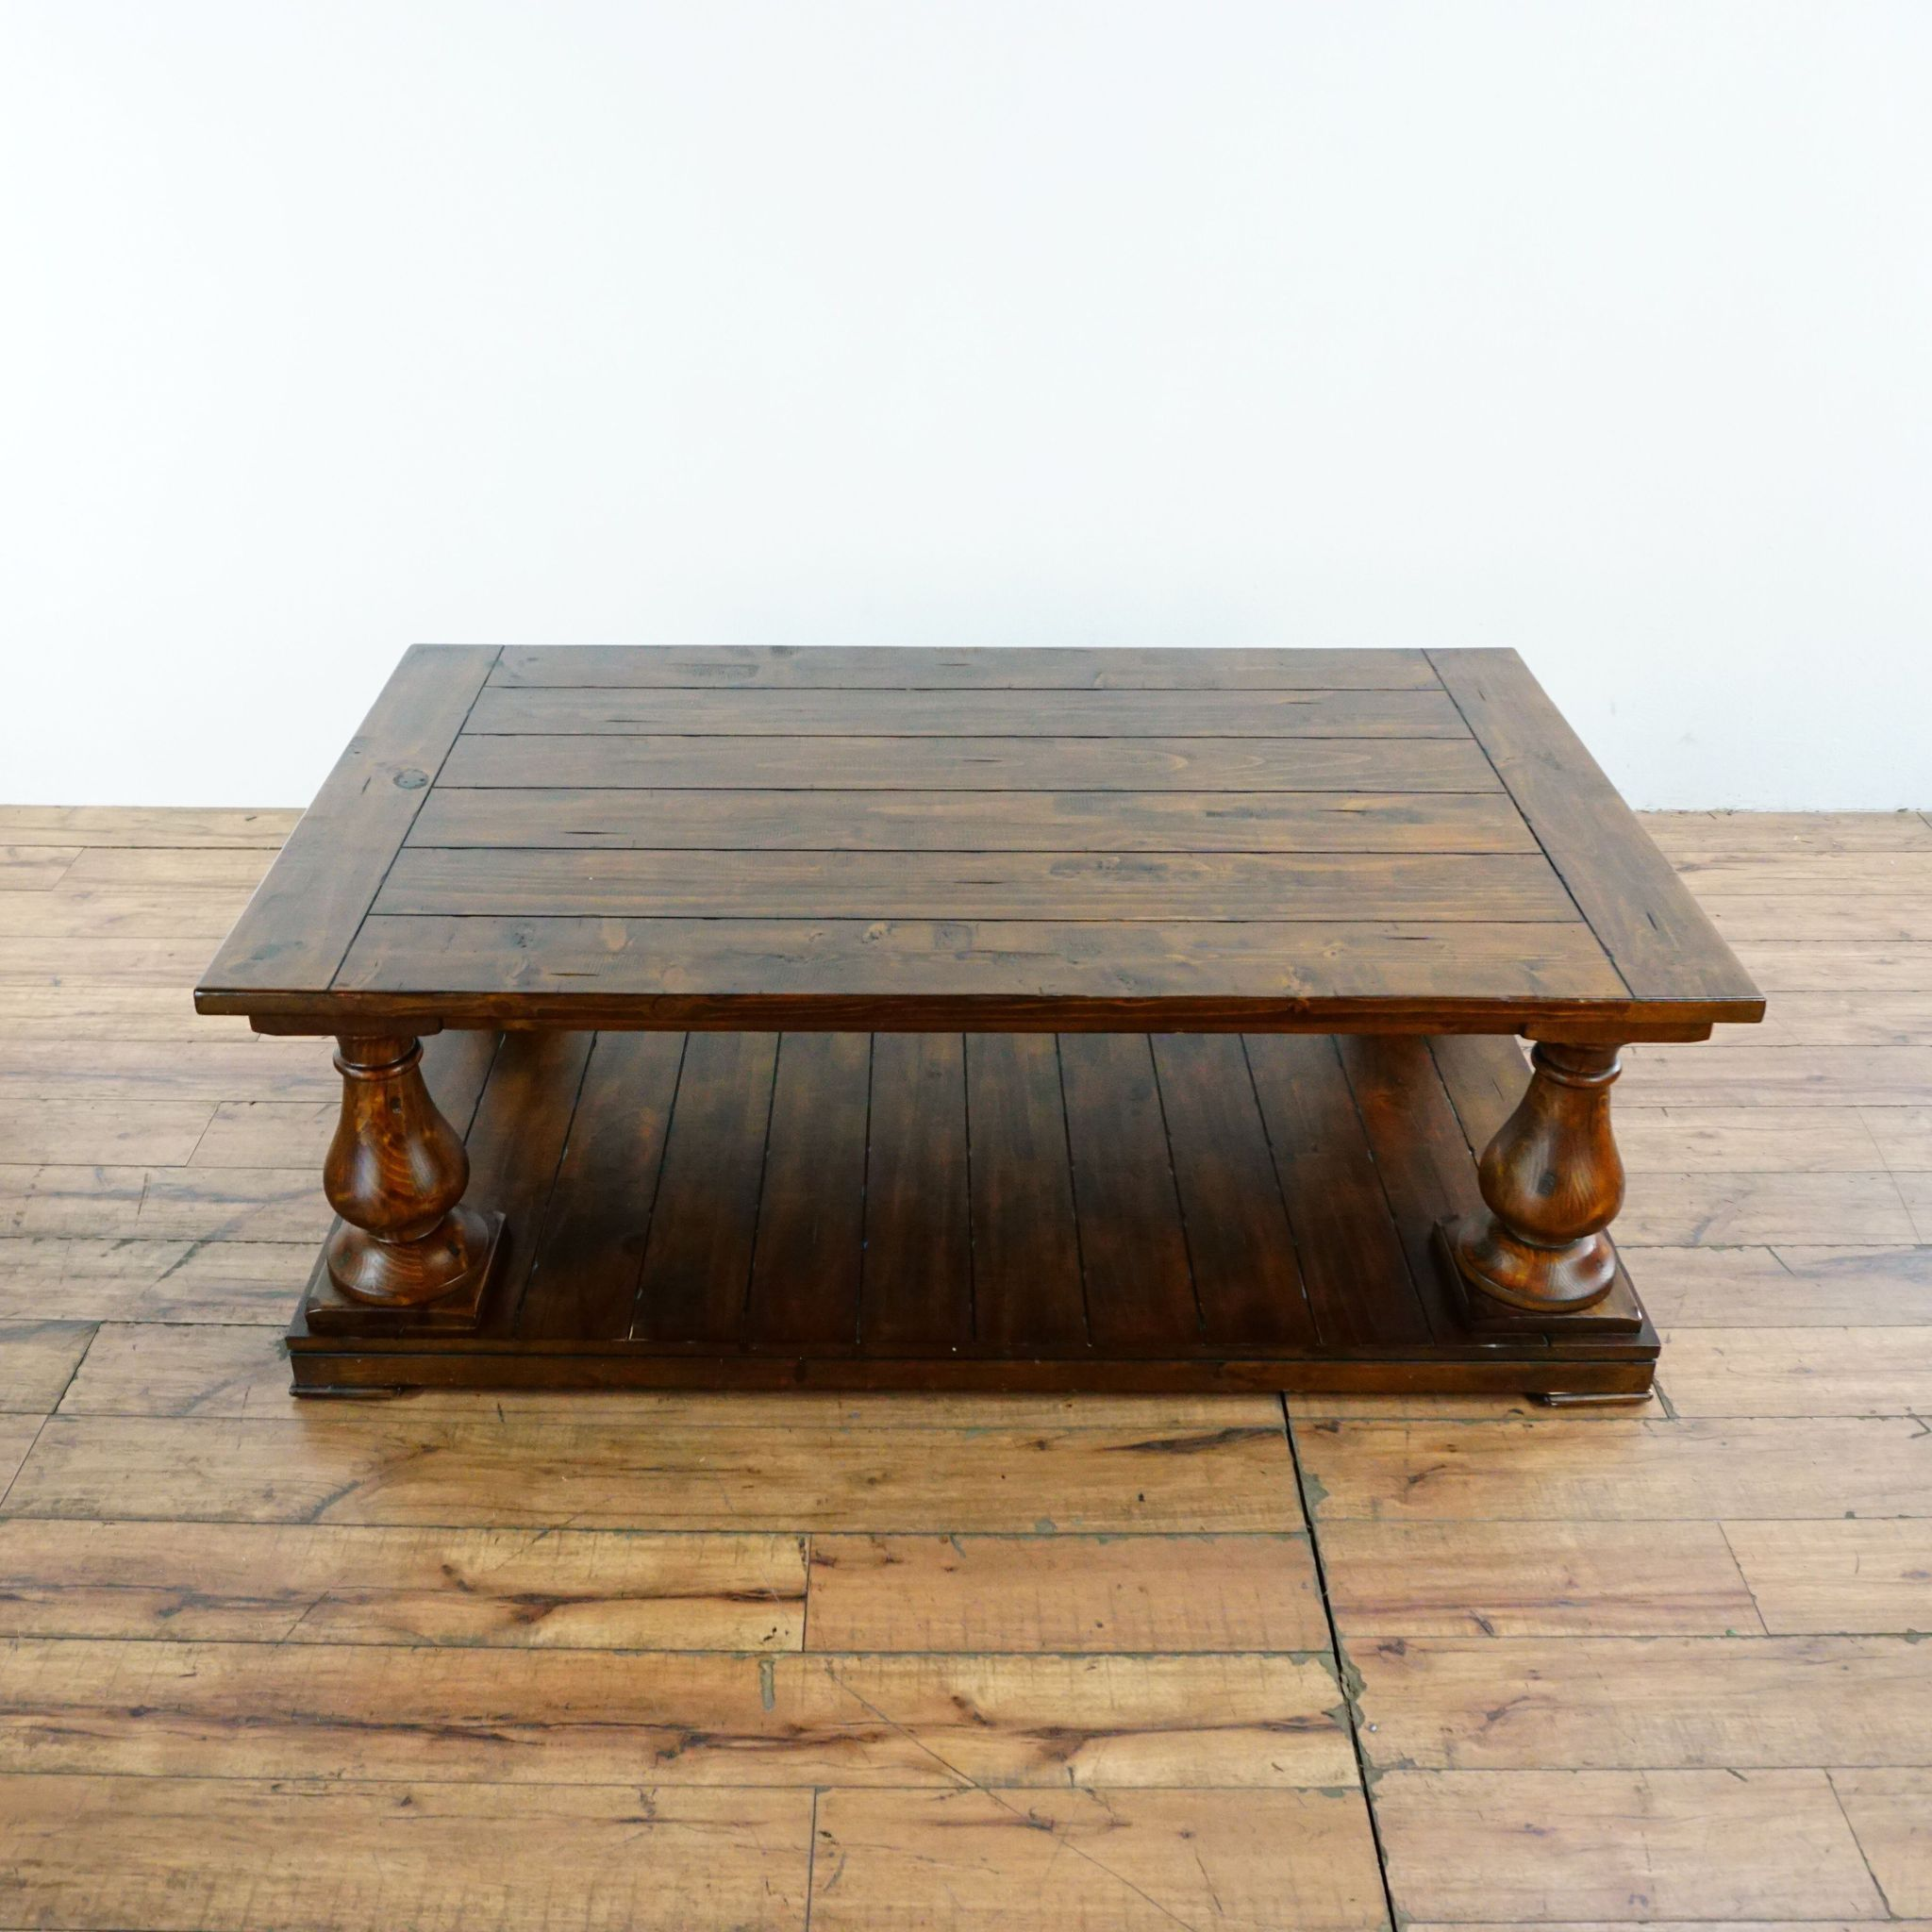 Wooden Coffee Table Wooden Coffee Table Coffee Table Solid Wood Table [ 2048 x 2048 Pixel ]